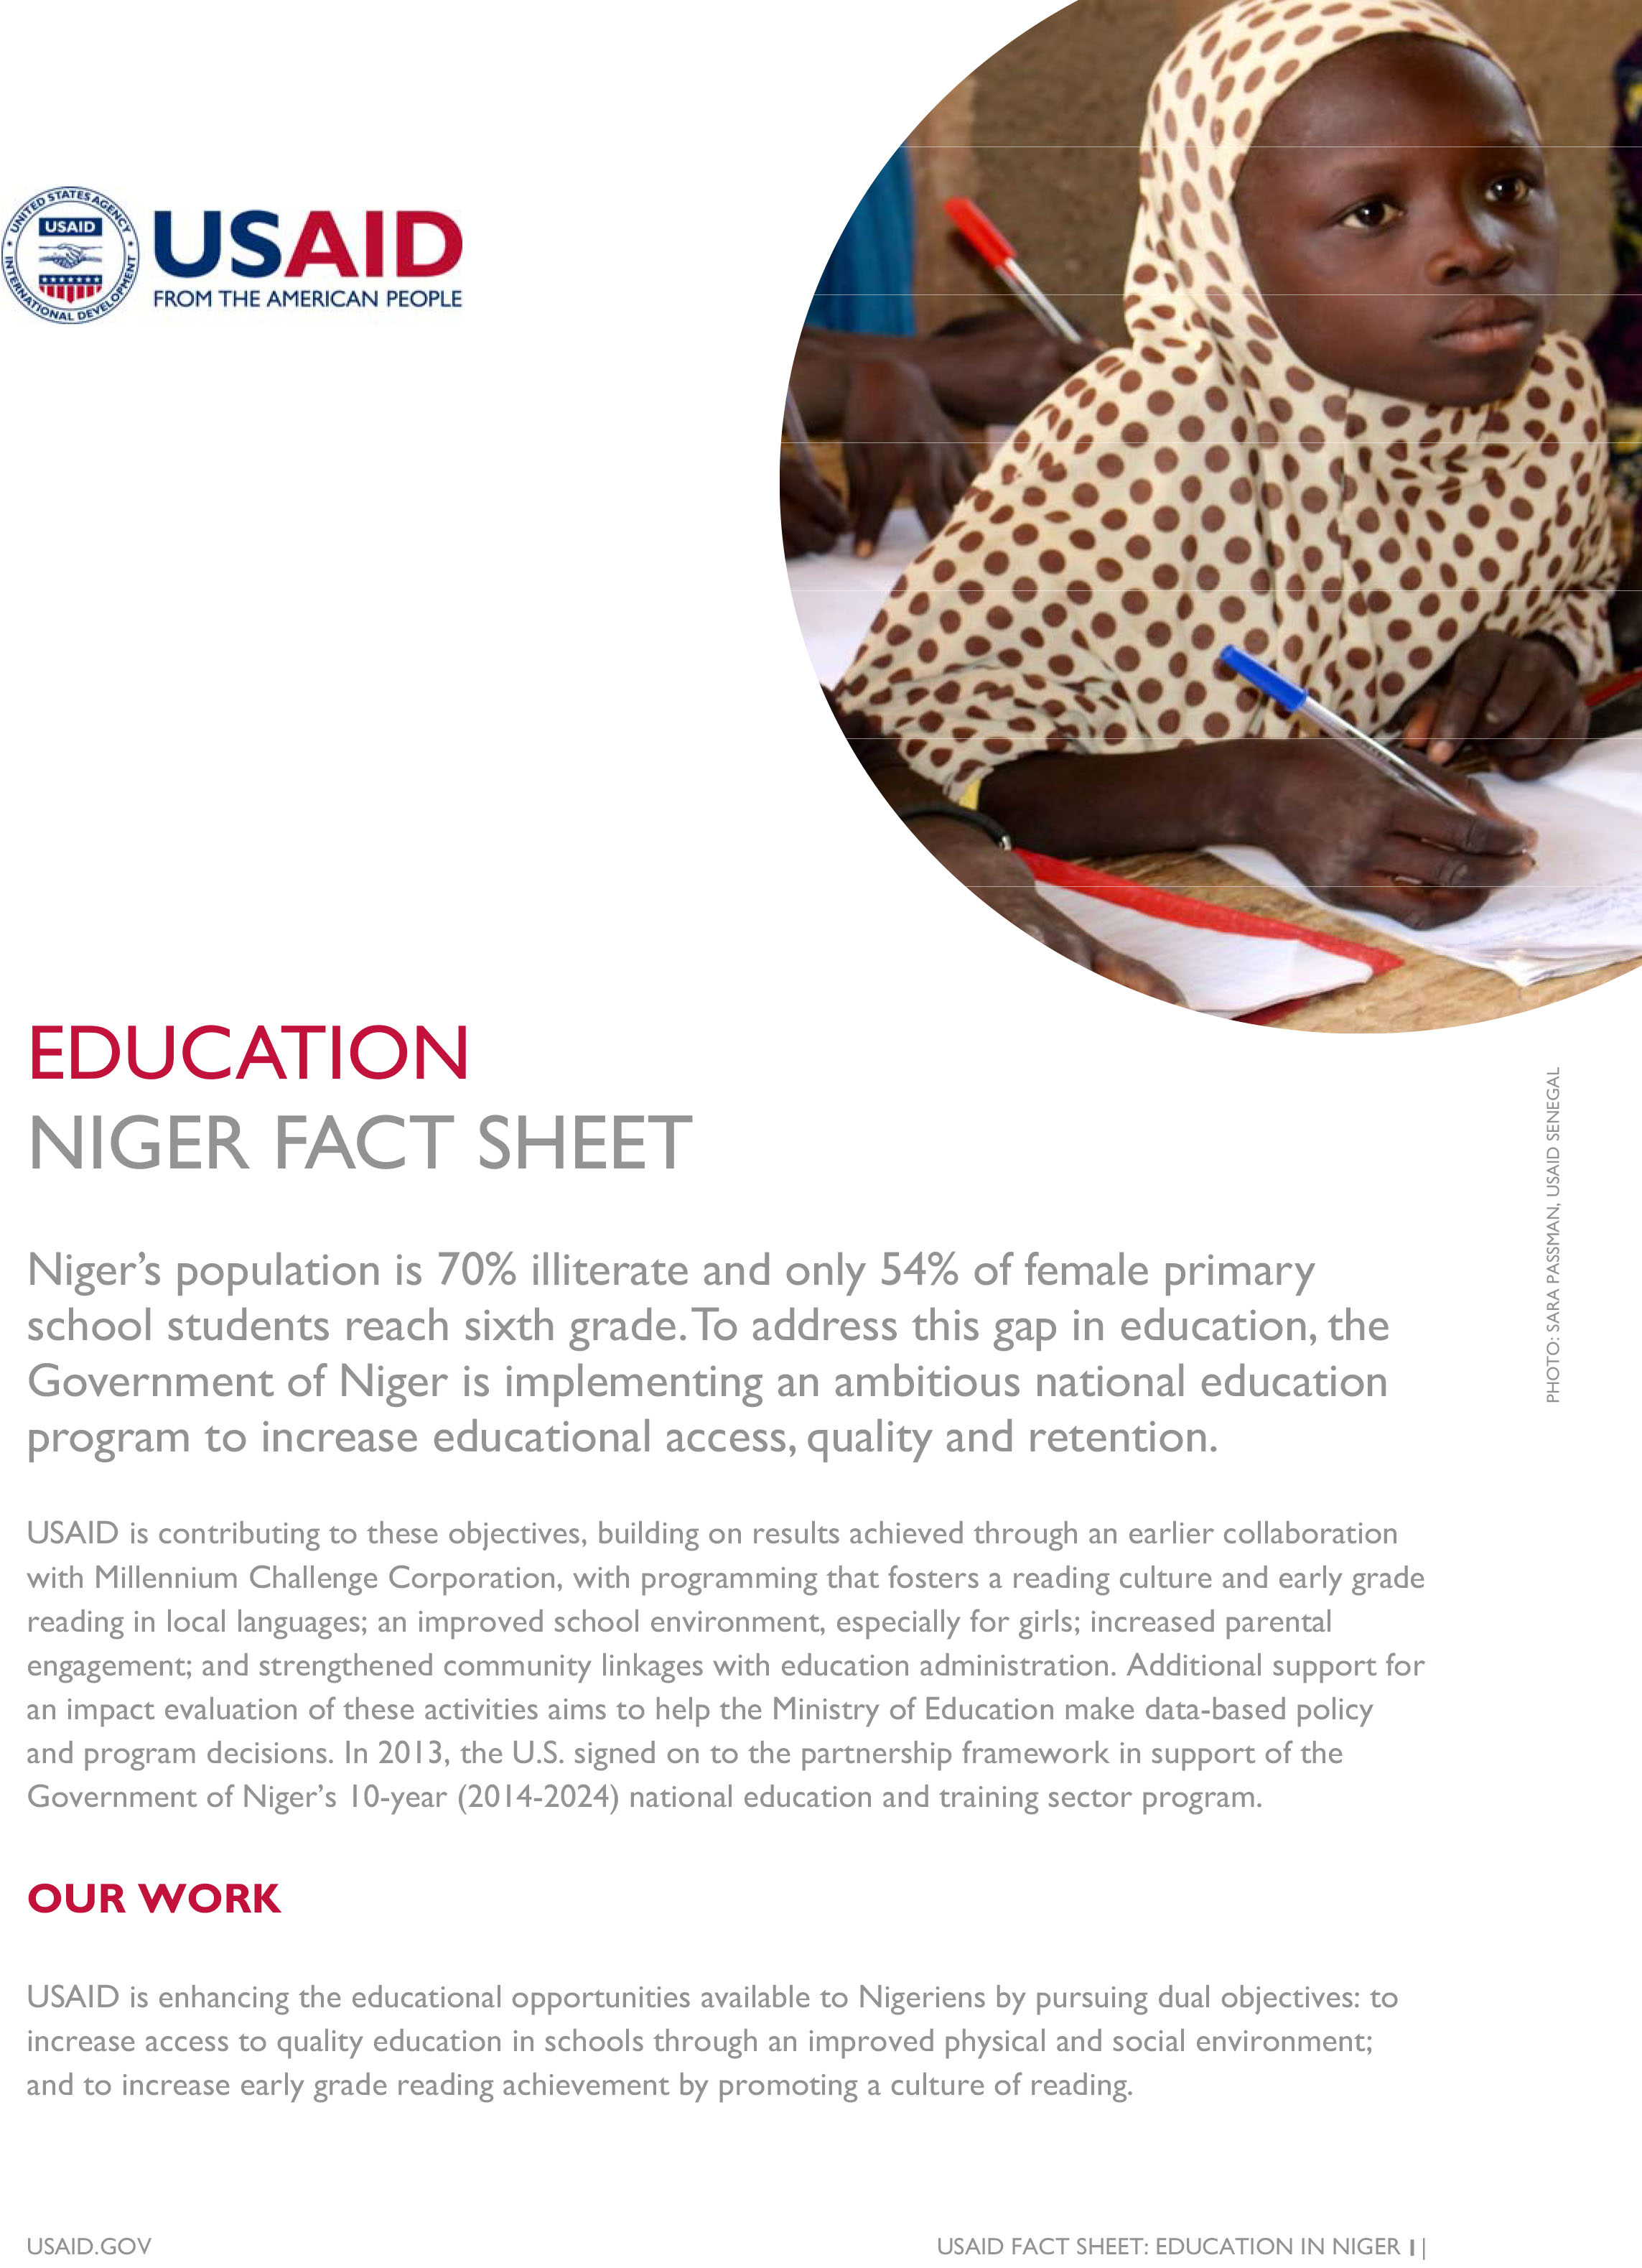 Niger Education Fact Sheet